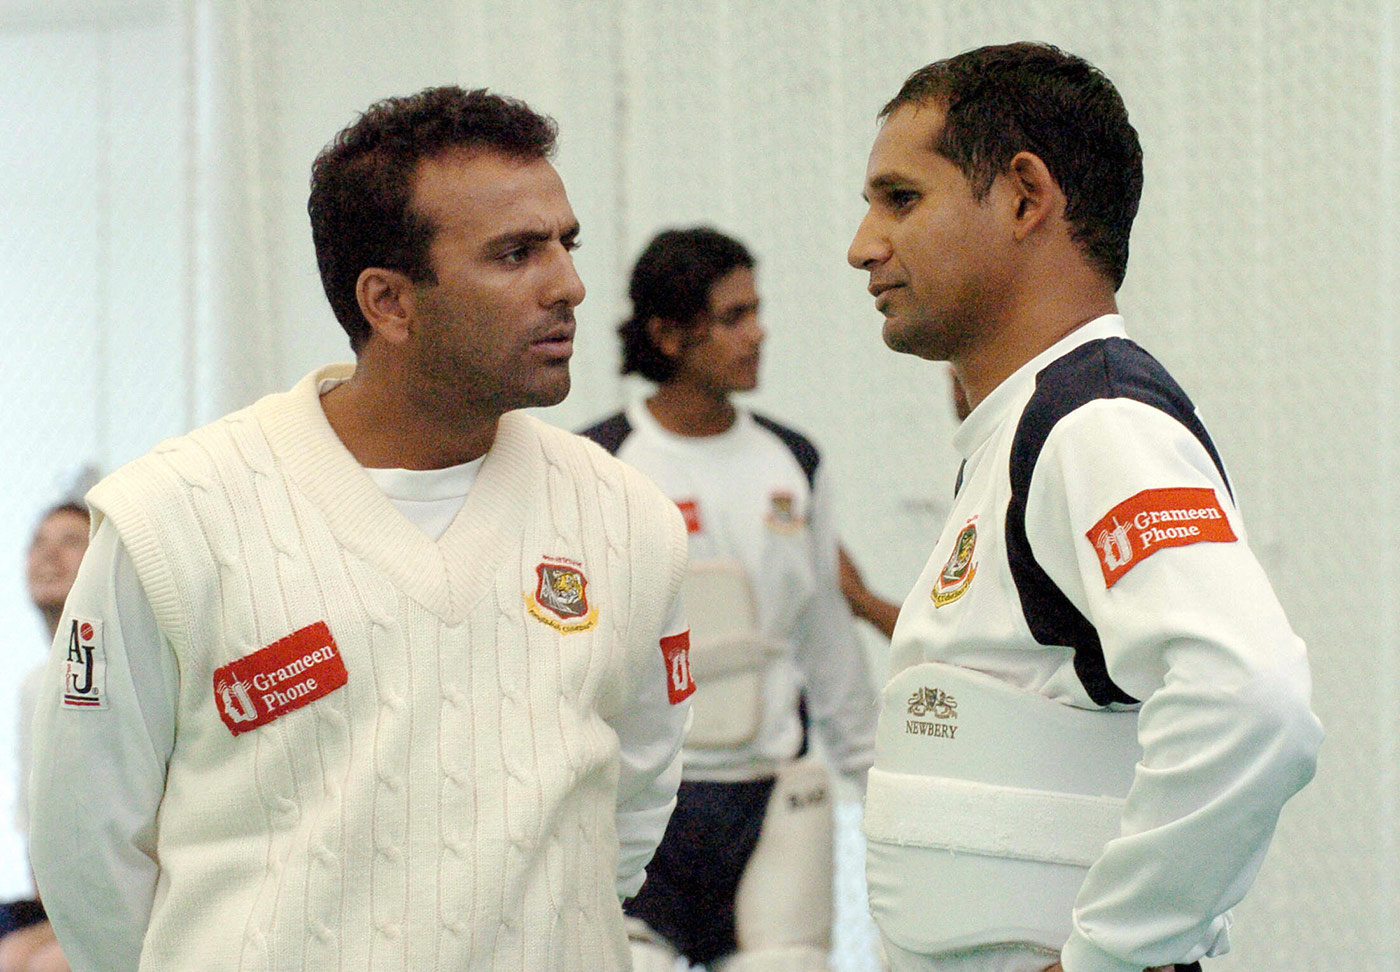 Chalk and cheese: Omar with Habibul Bashar, one of the players whose polar opposite he was in many ways